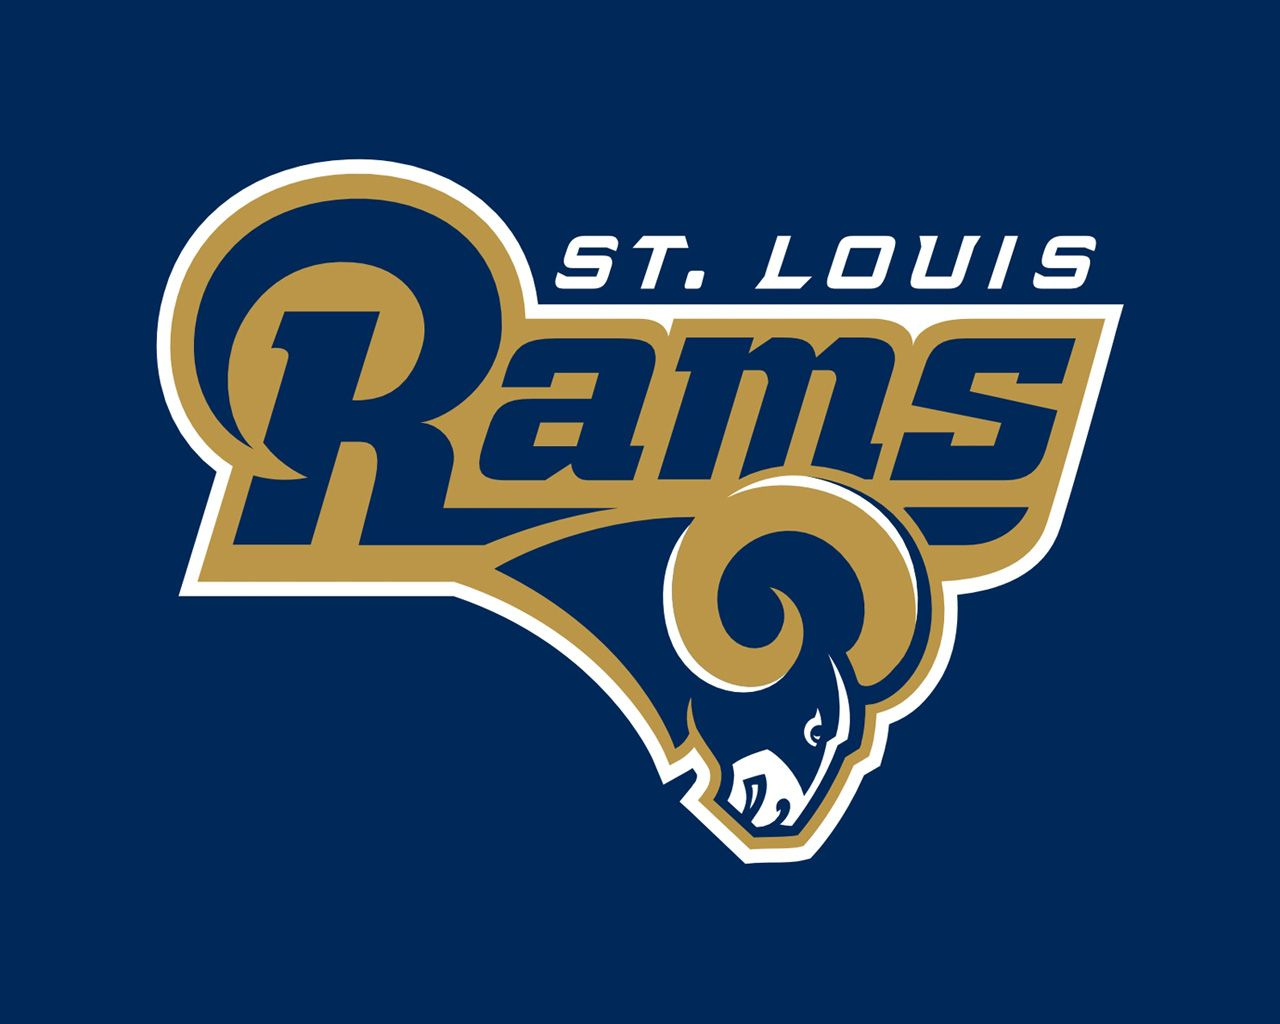 Stl Rams Football St Louis Rams Los Angeles Rams Los Angeles